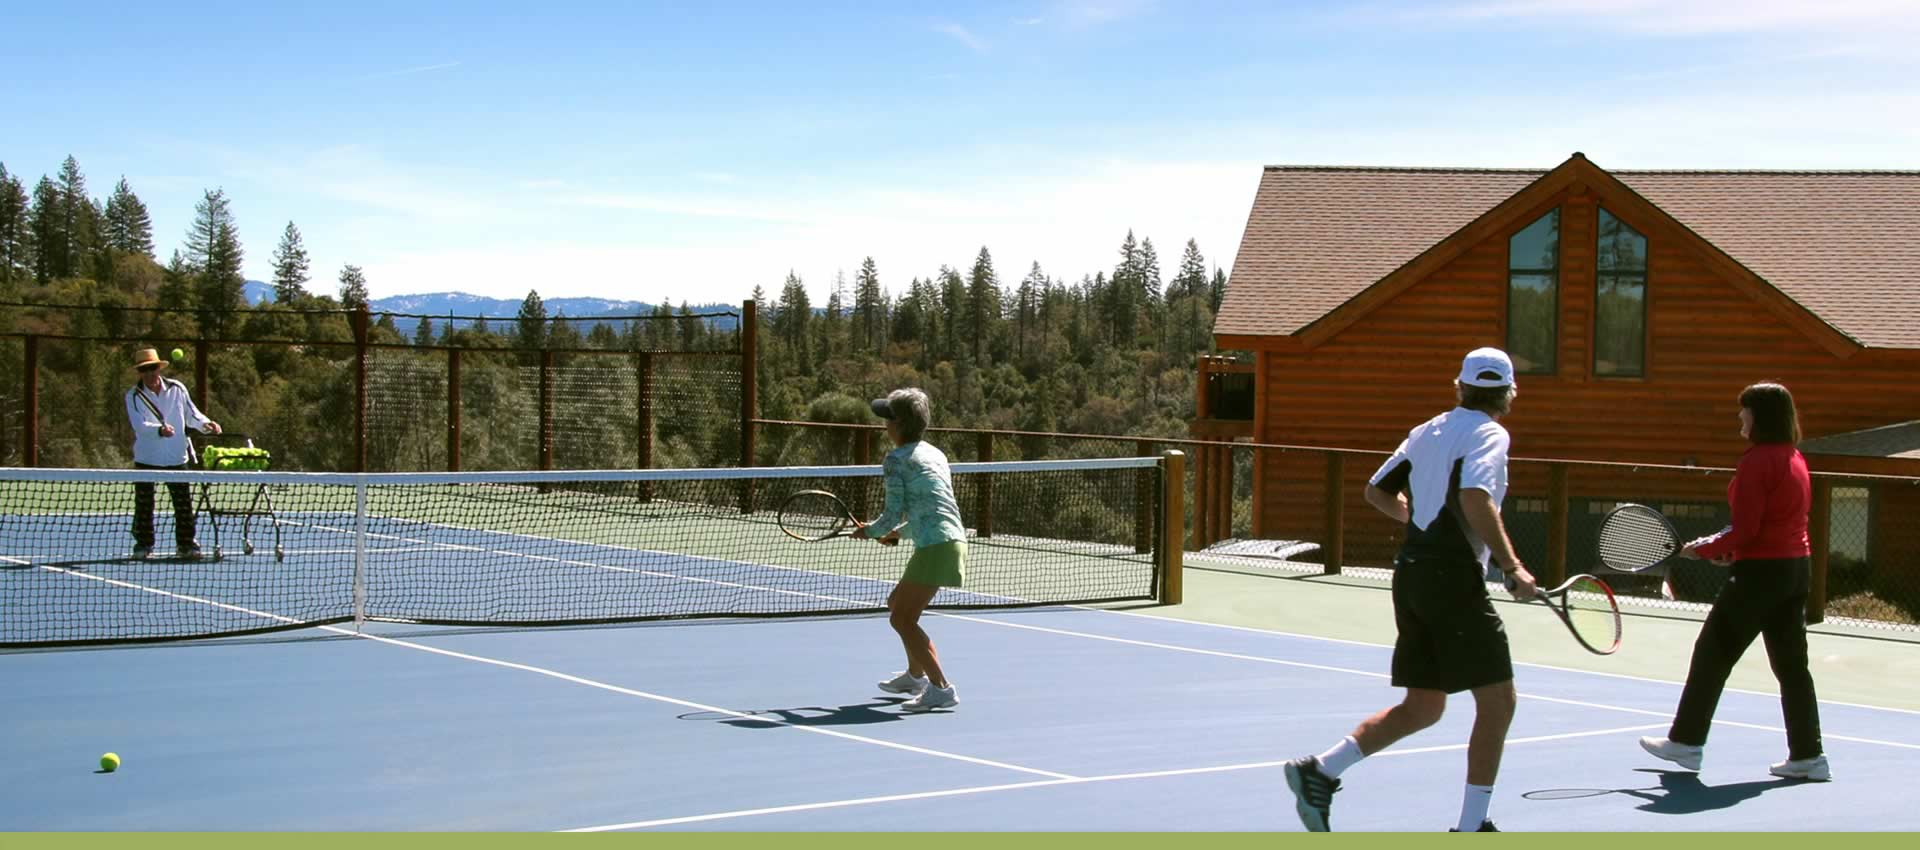 Courtwood Inn Guests Playing Tennis on Tennis Court